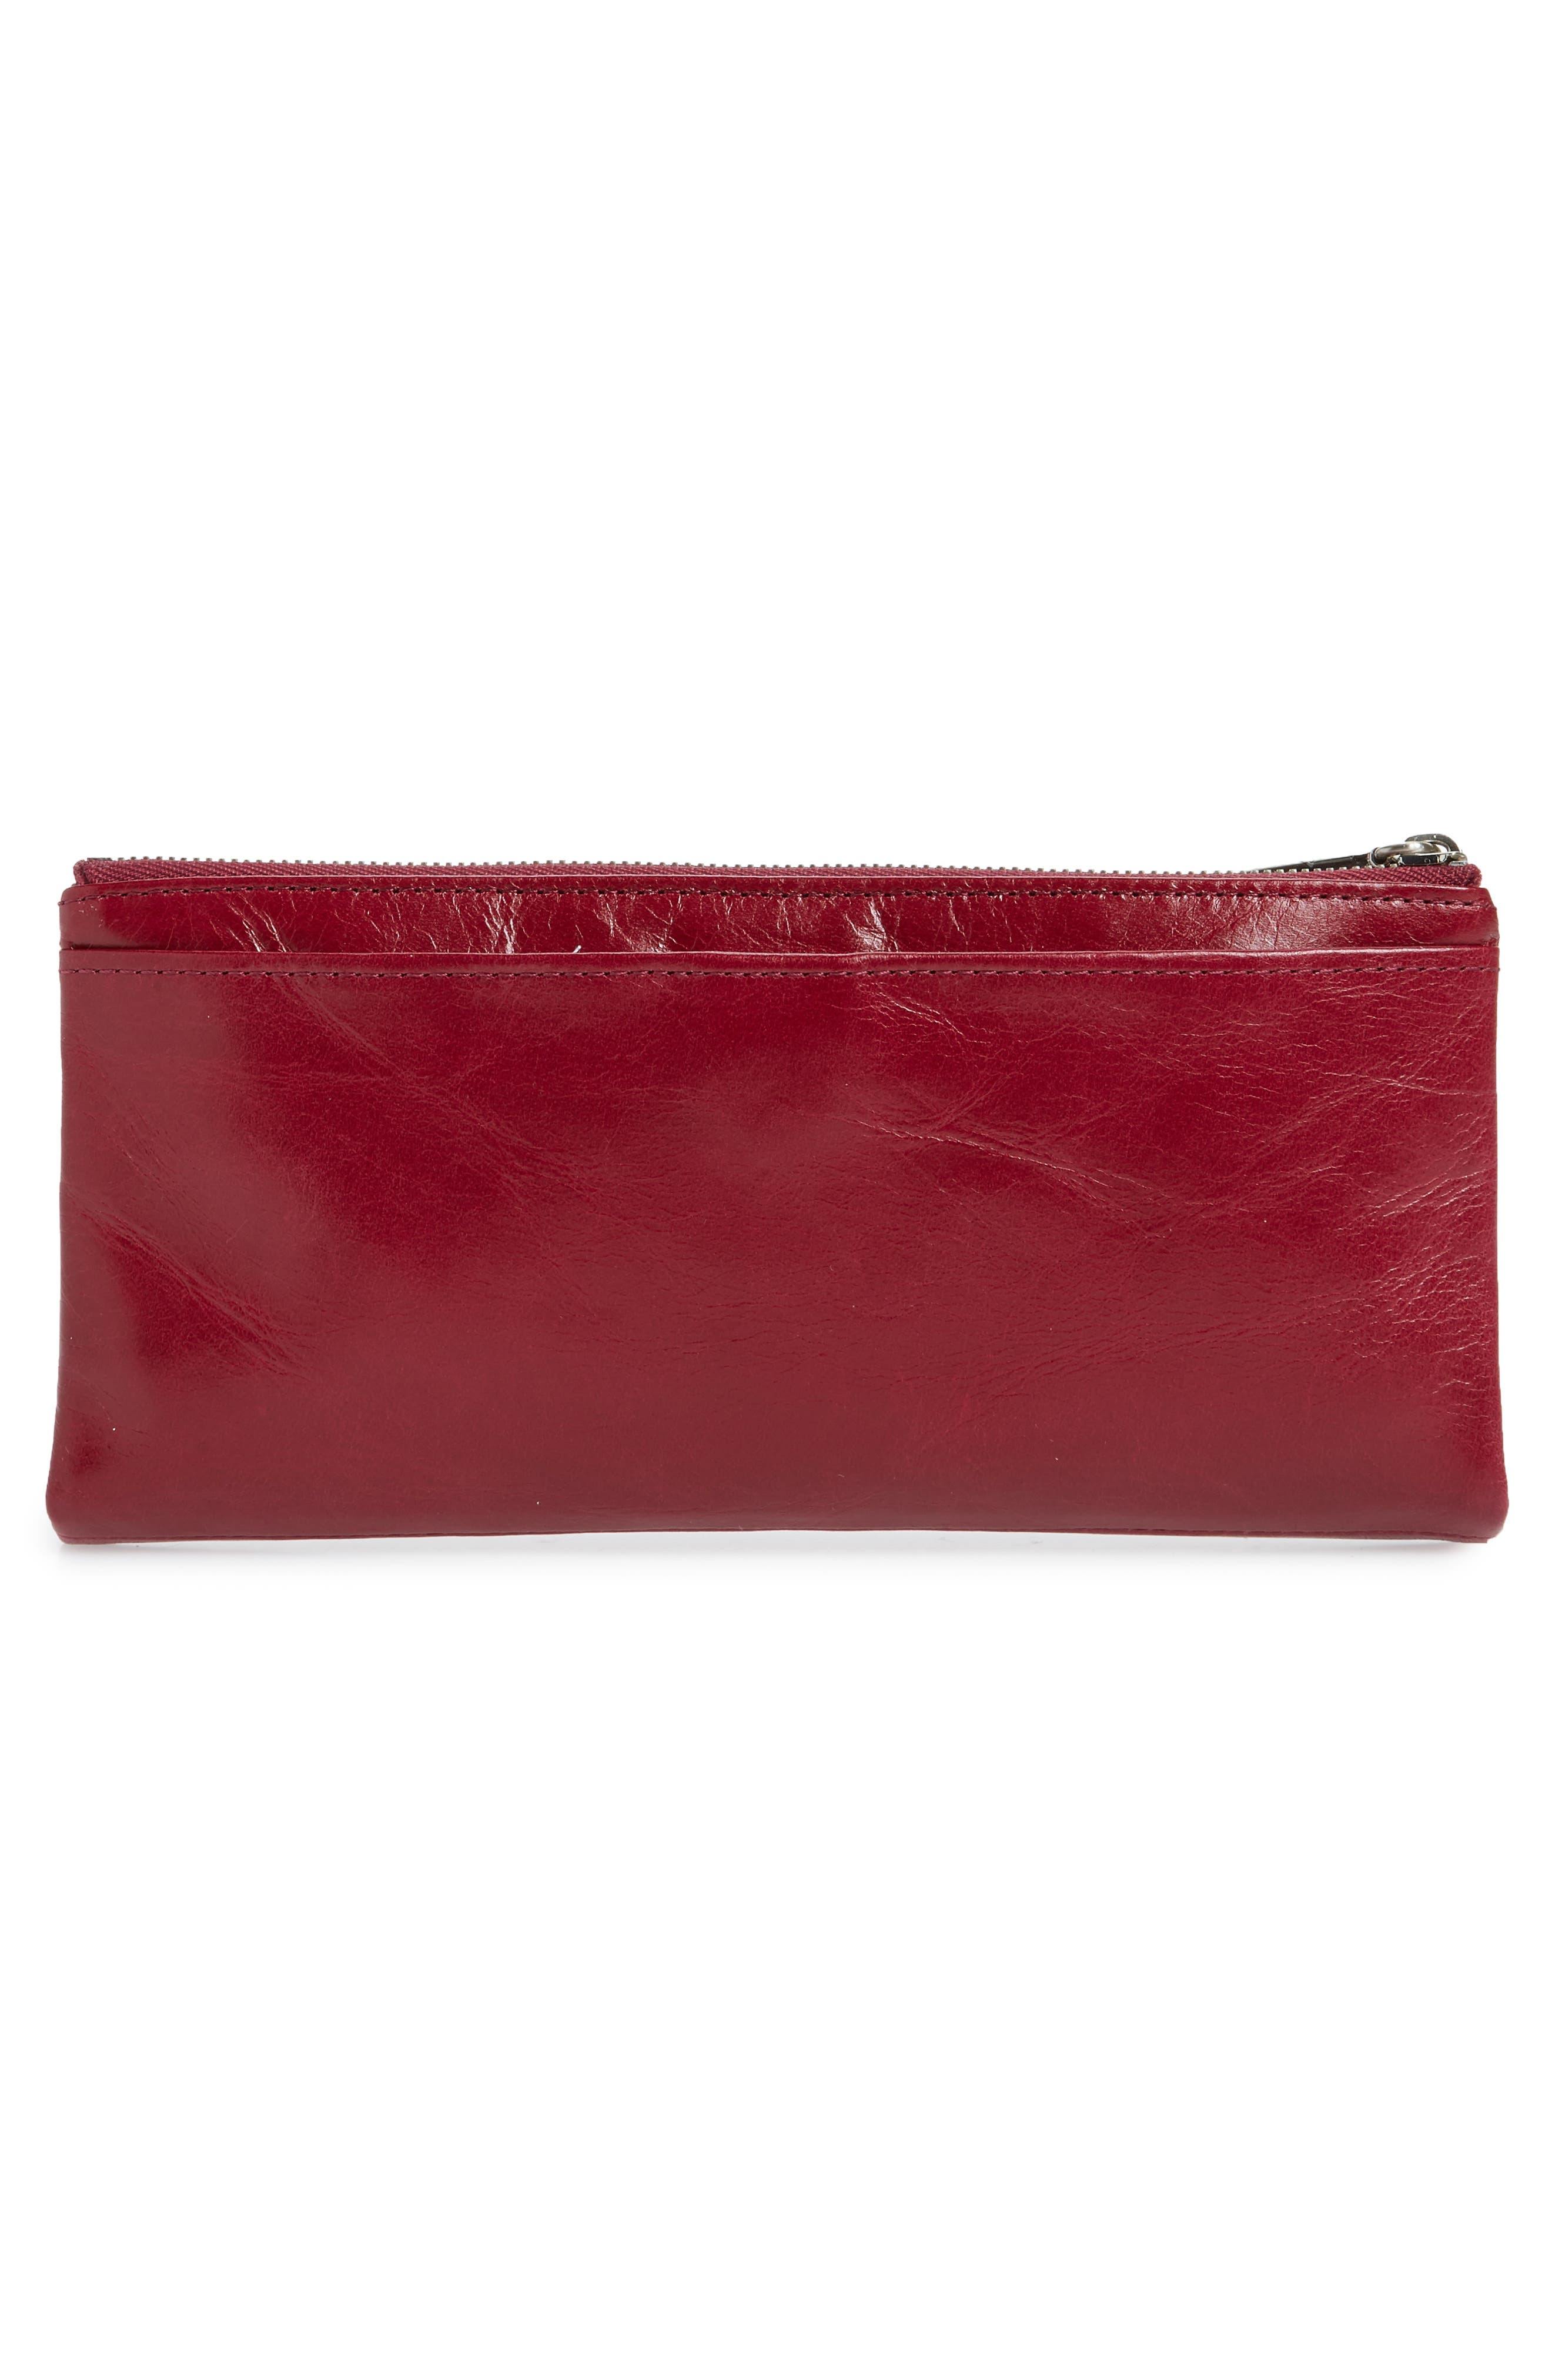 Taylor Glazed Wallet,                             Alternate thumbnail 3, color,                             RUBY